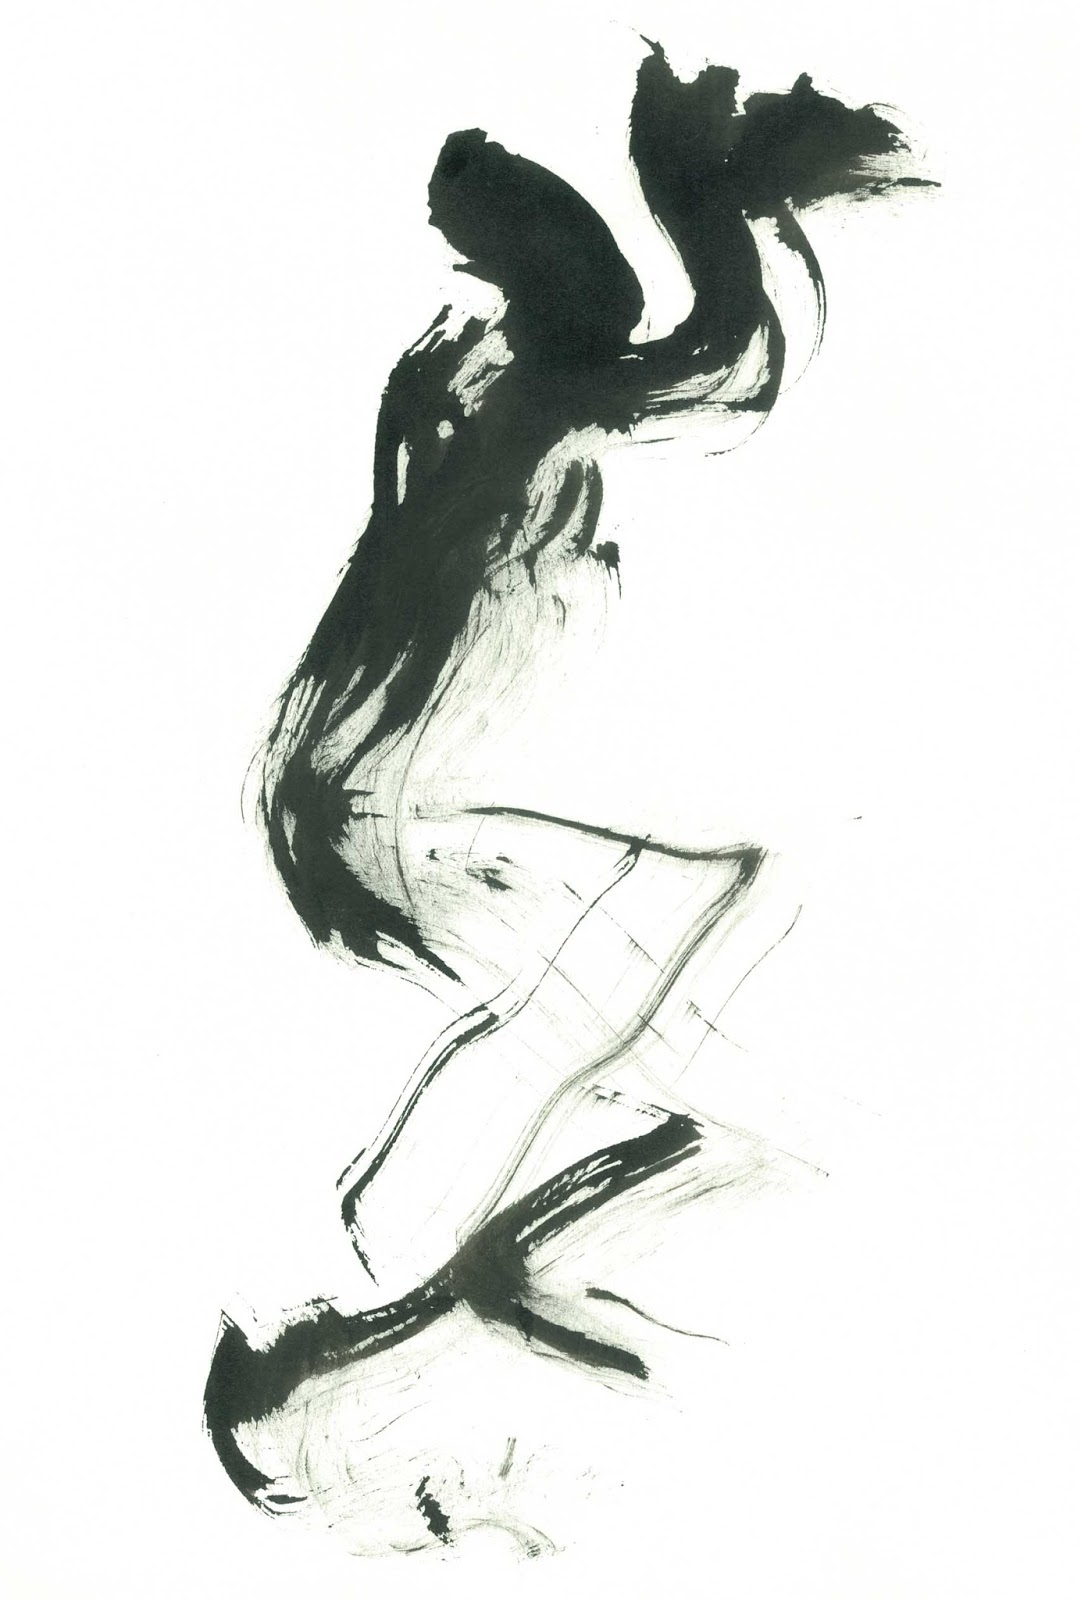 Sketch by Isobel Williams from Proof magazine